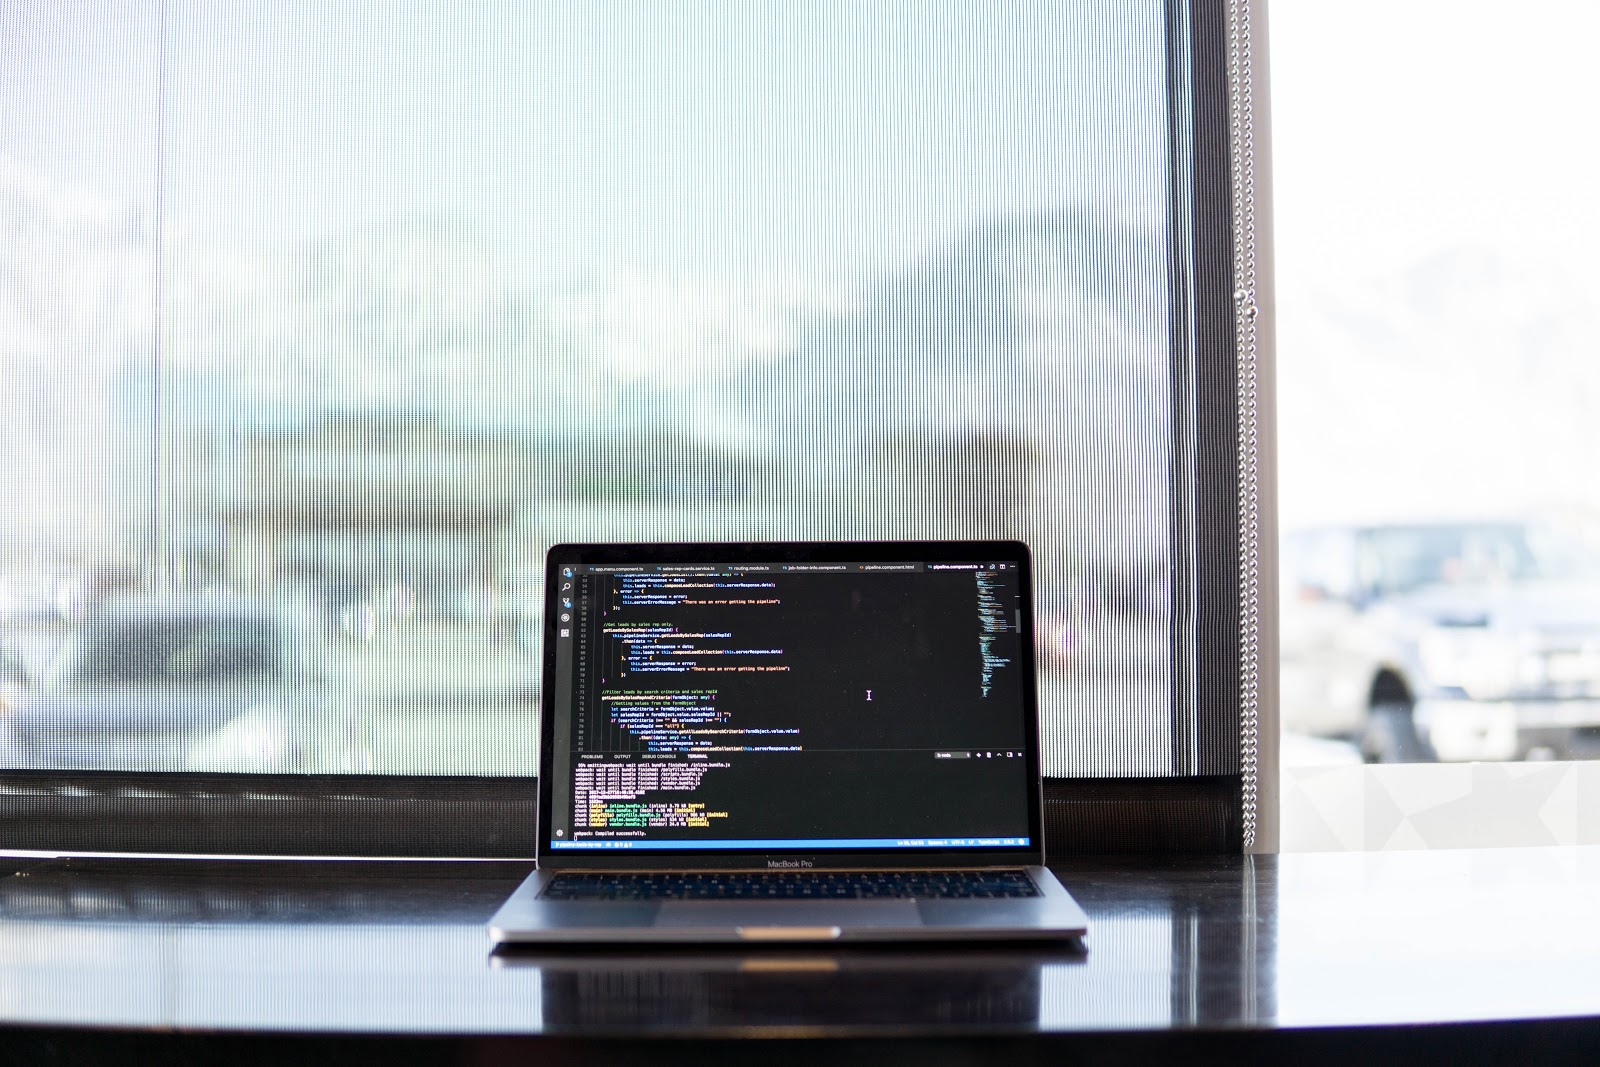 Laptop displaying a black screen with code, sitting on a black desk against a window